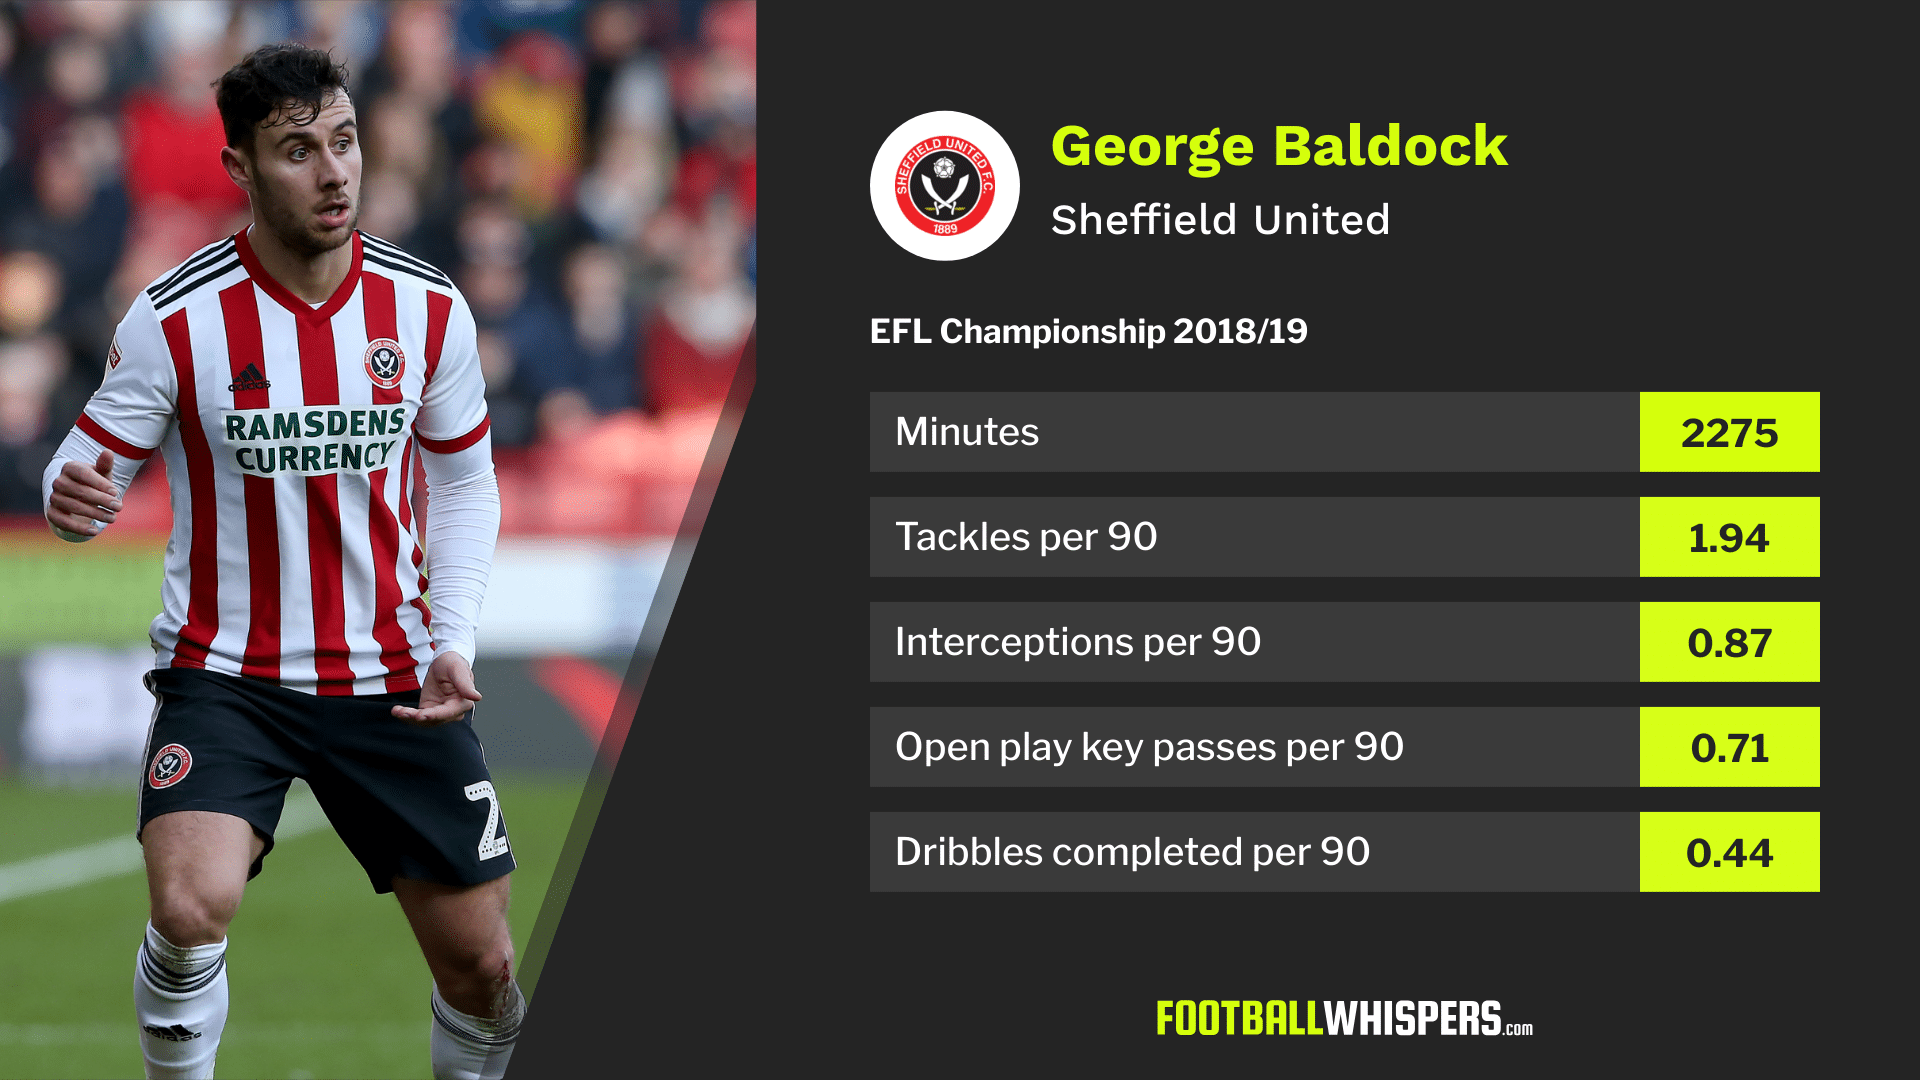 George Baldock's 2018/19 EFL Championship stats for Sheffield United